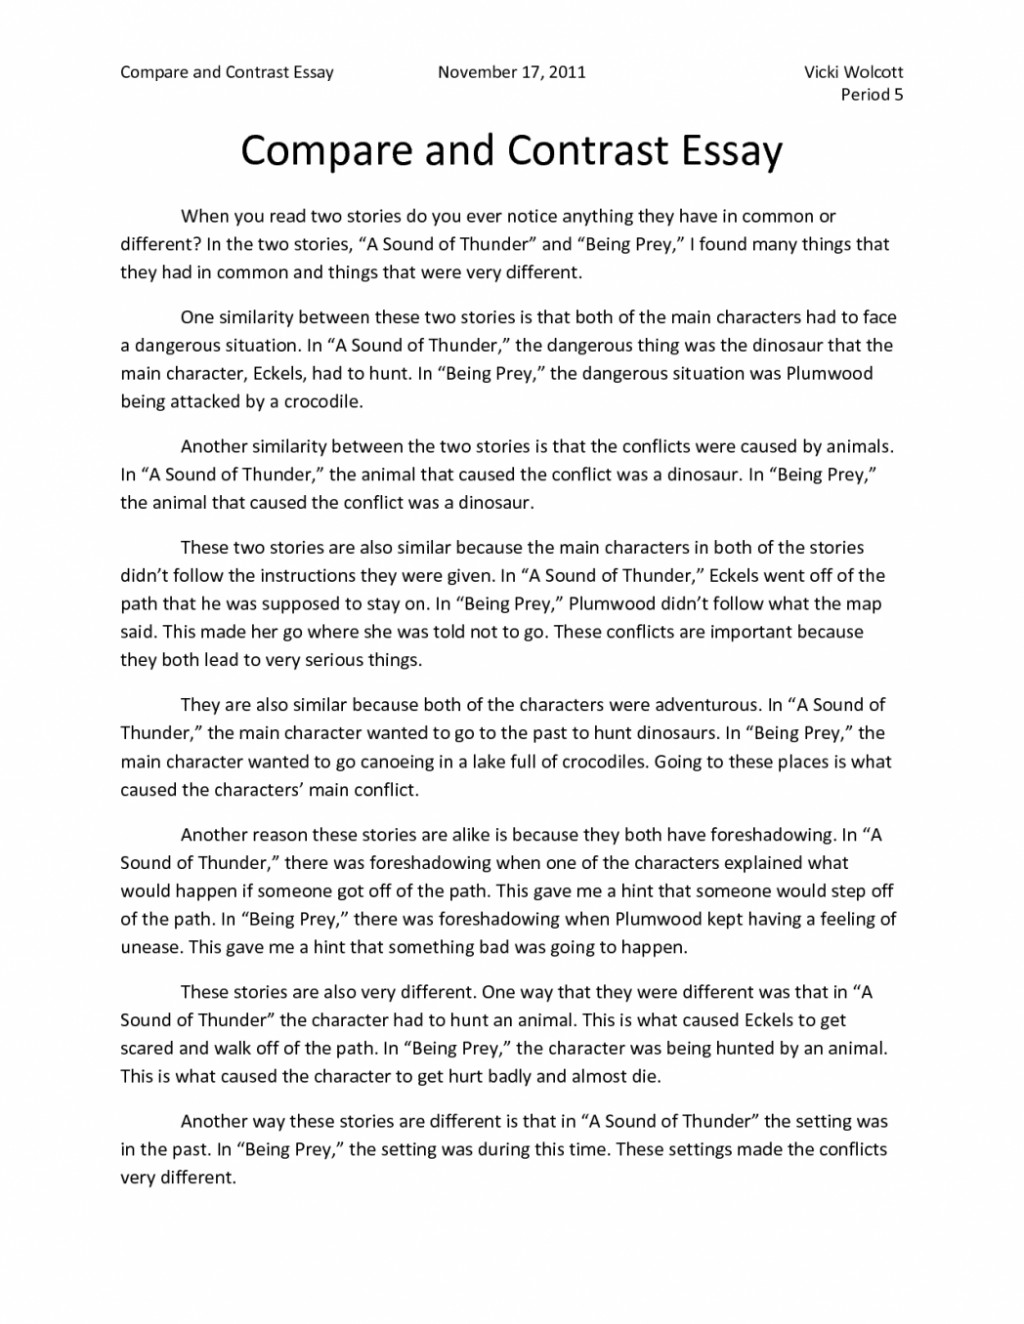 020 Argumentative Essay Topics For Proposal On Immigration Laws Compare And Contrast 1048x1356 Wonderful Illegal Large